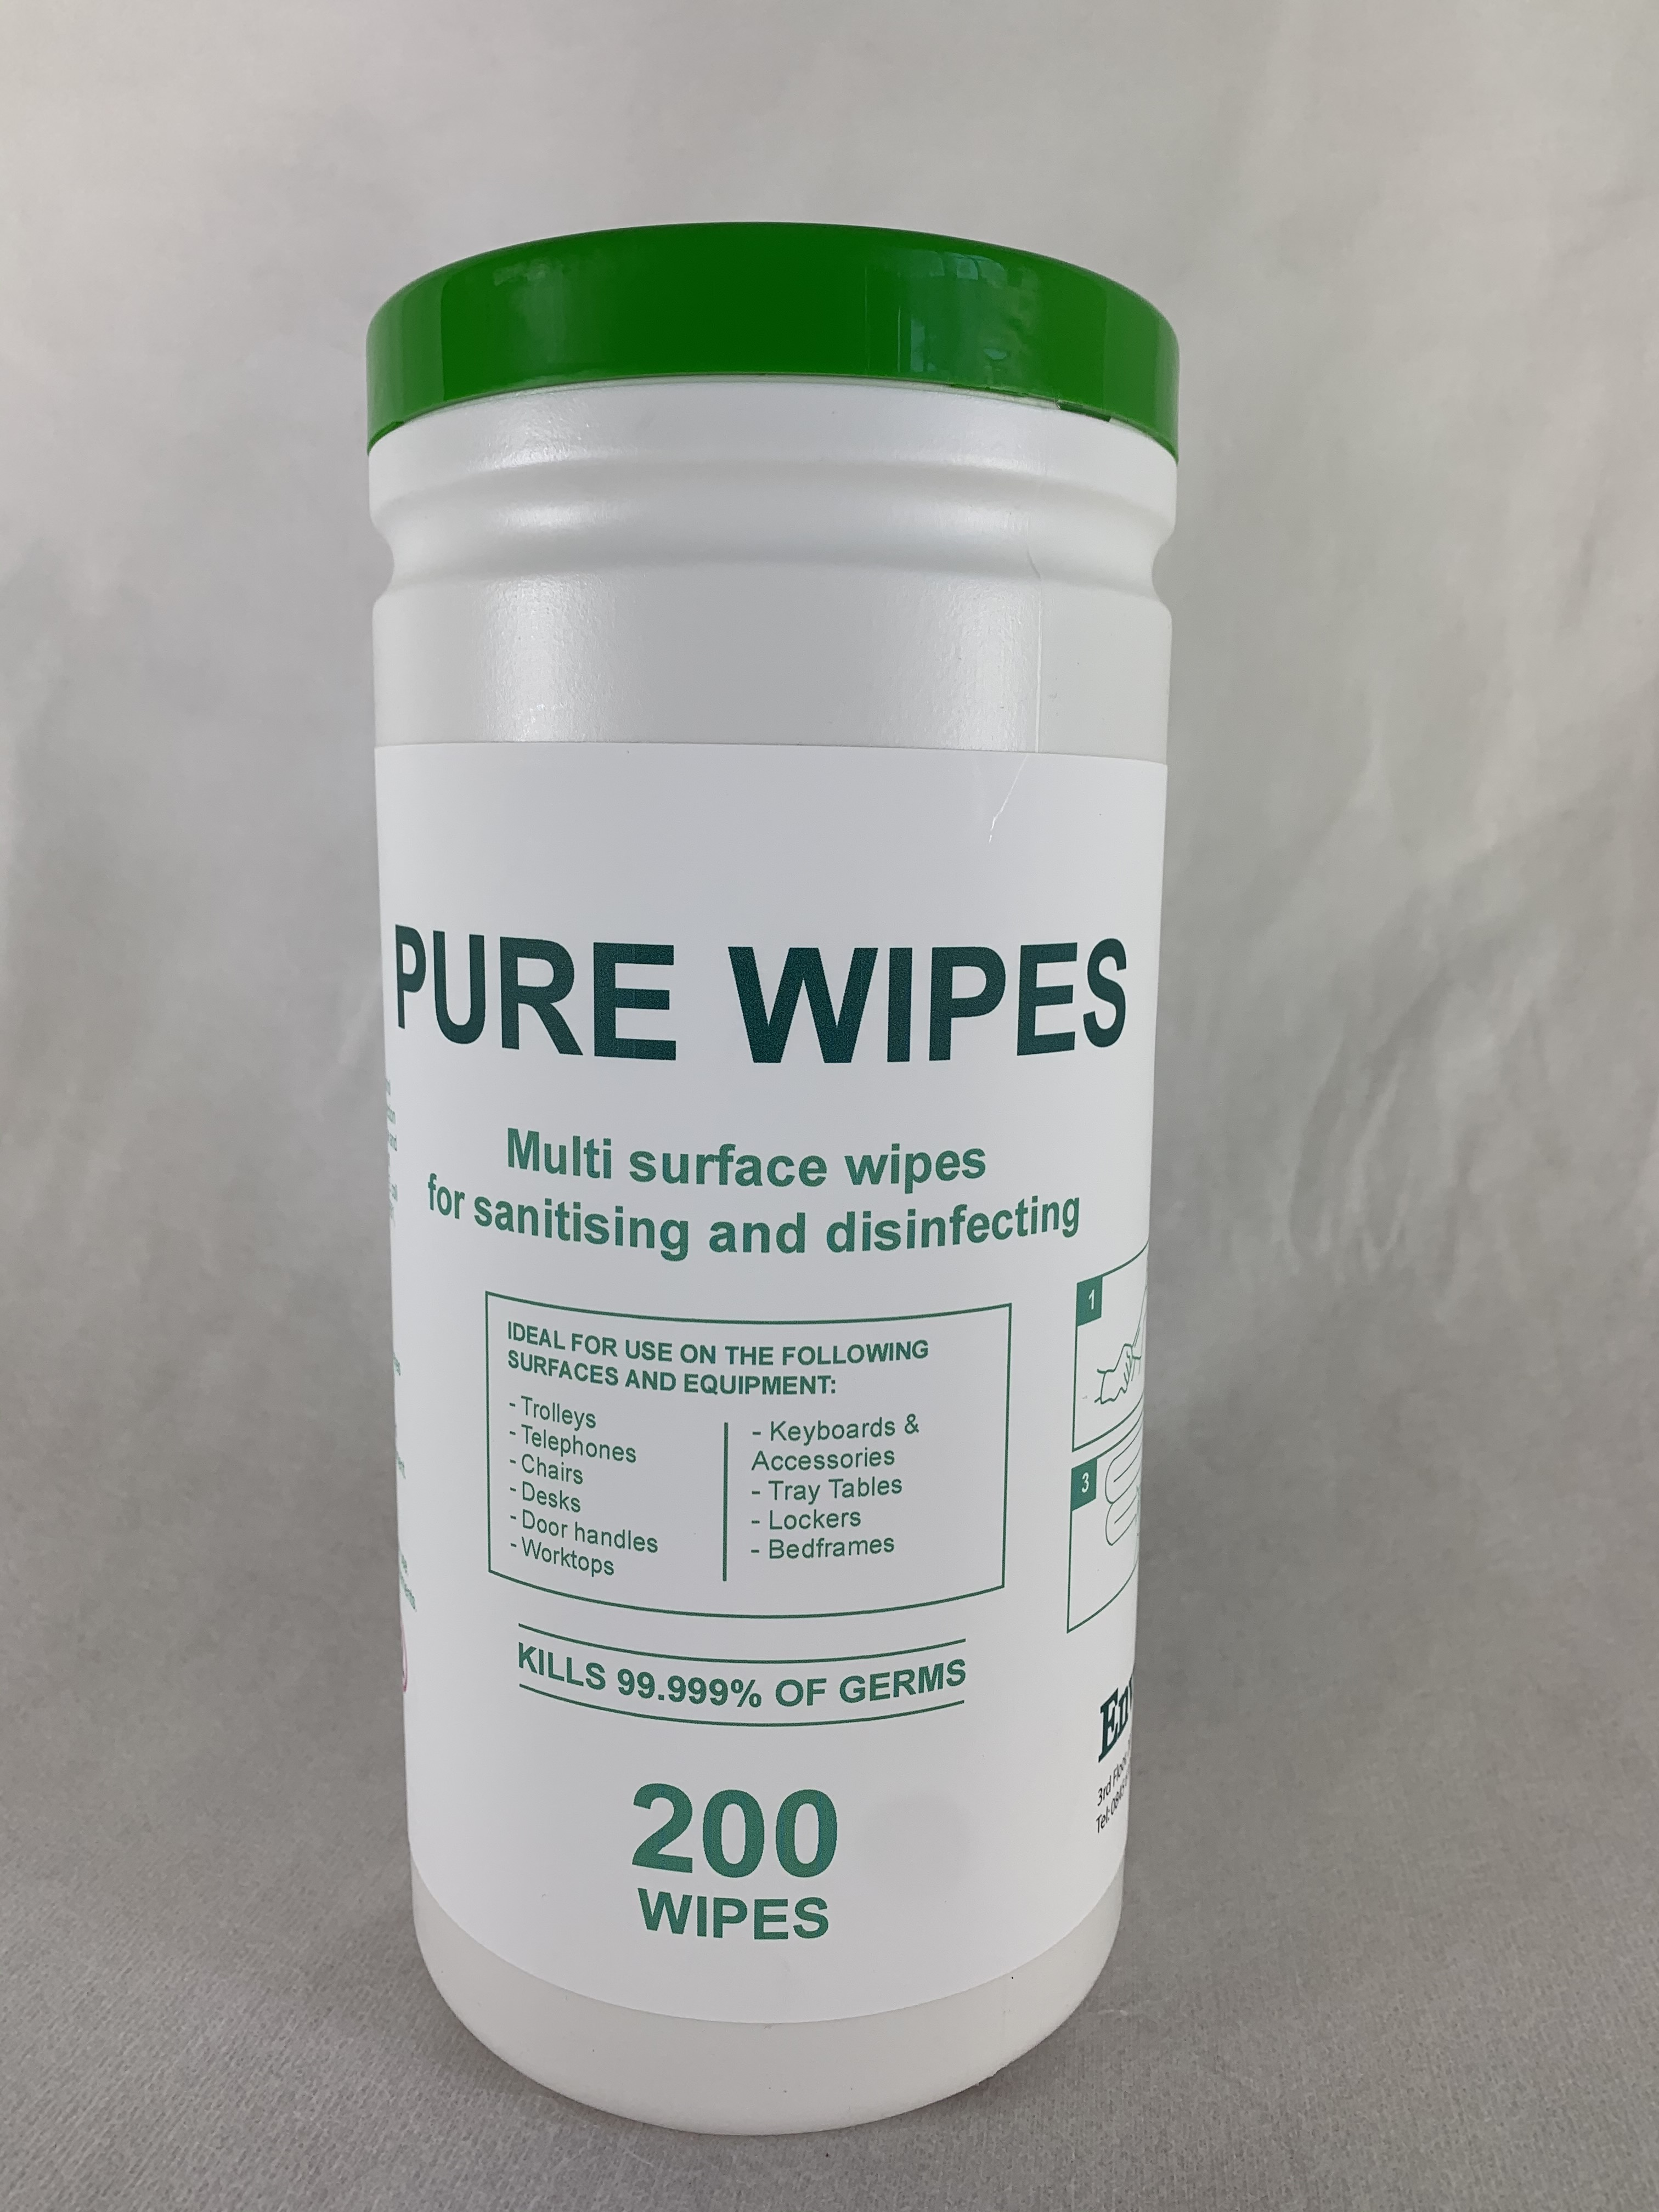 Alcohol Wipes Pure 70% IPA General Surface 200 Wipes - Helps protect against – Coronavirus, Covid 19